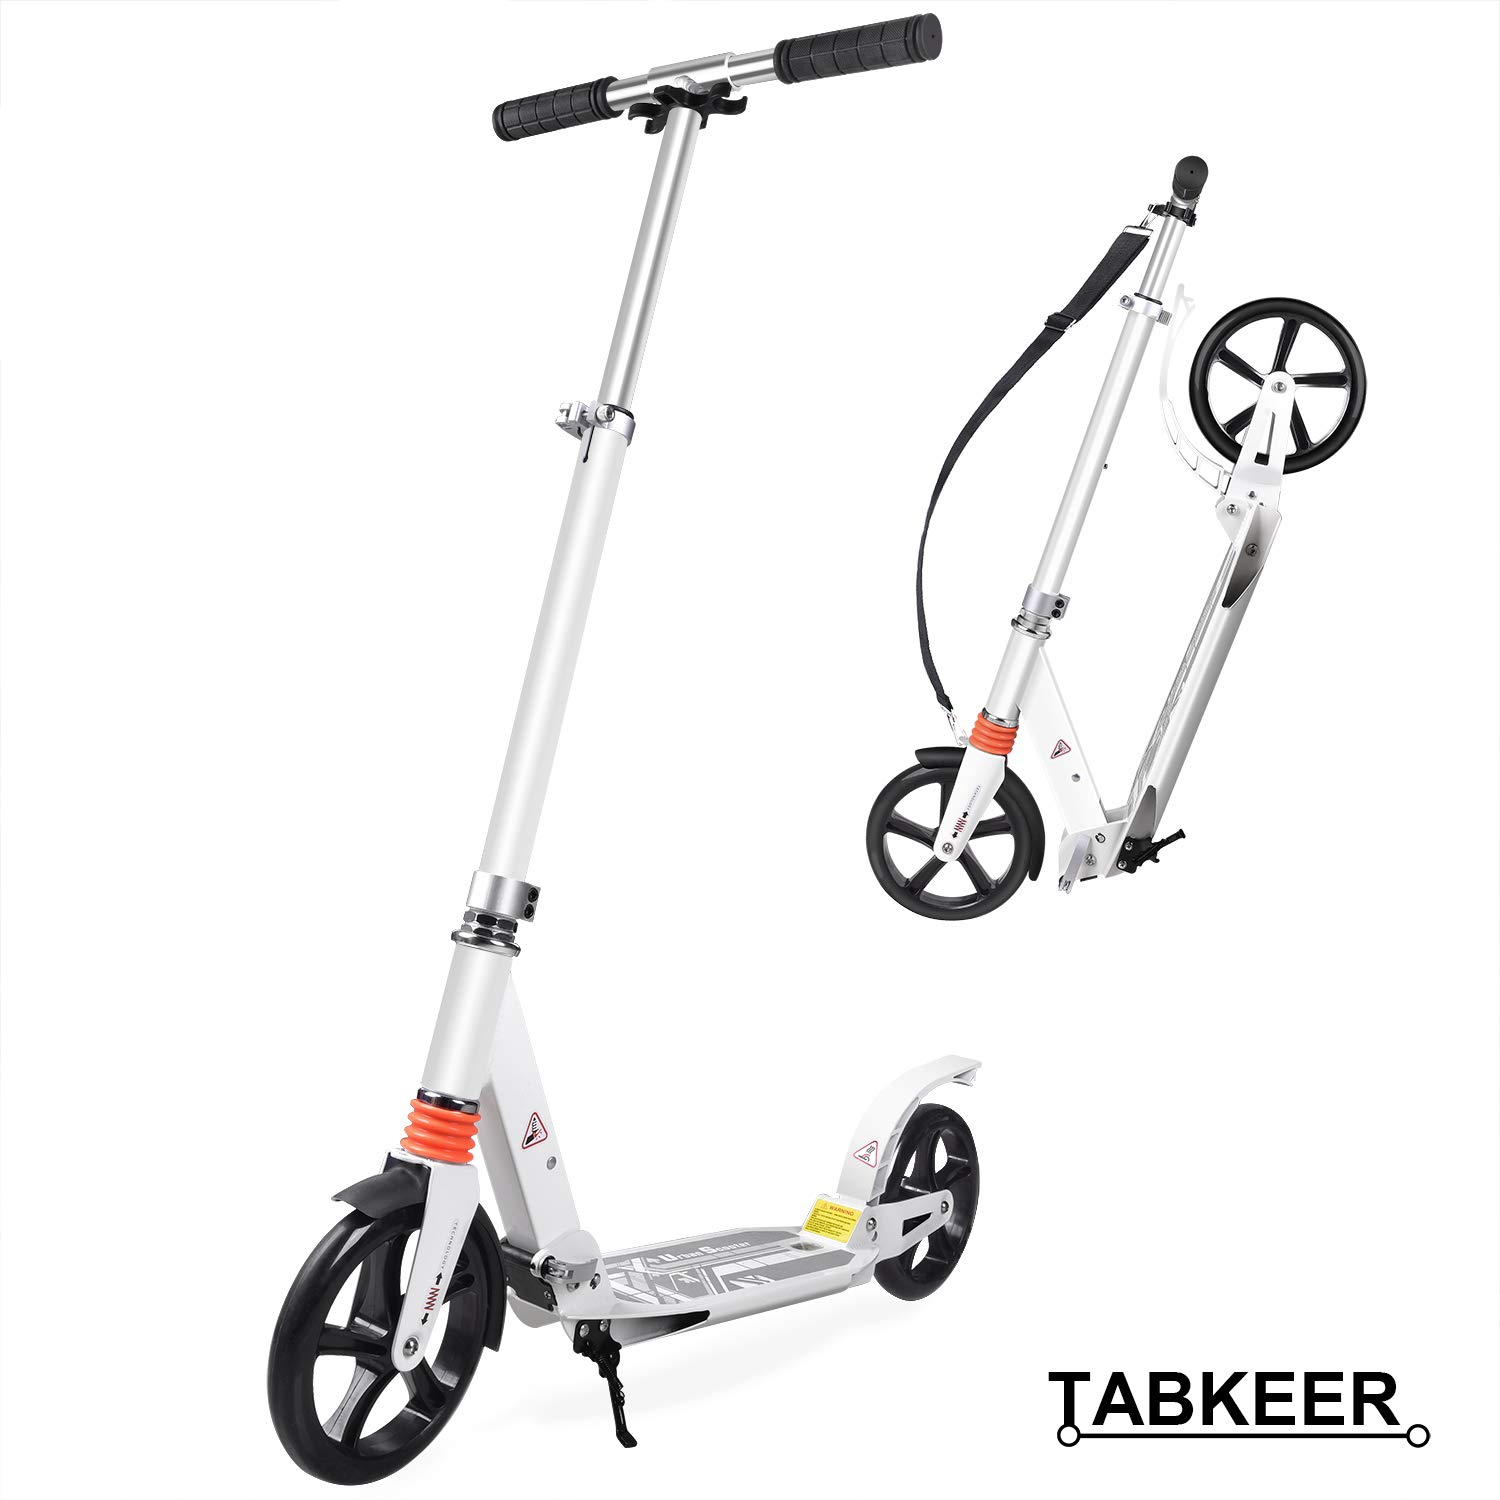 TABKEER Scooter for Adults Teens, Aluminum Alloy Foldable Adult Scooter Adjustable Height Handlebars and Kickstand with 8 inches Big Wheels Lightweight Scooters for Kids Age 12 Up by TABKEER